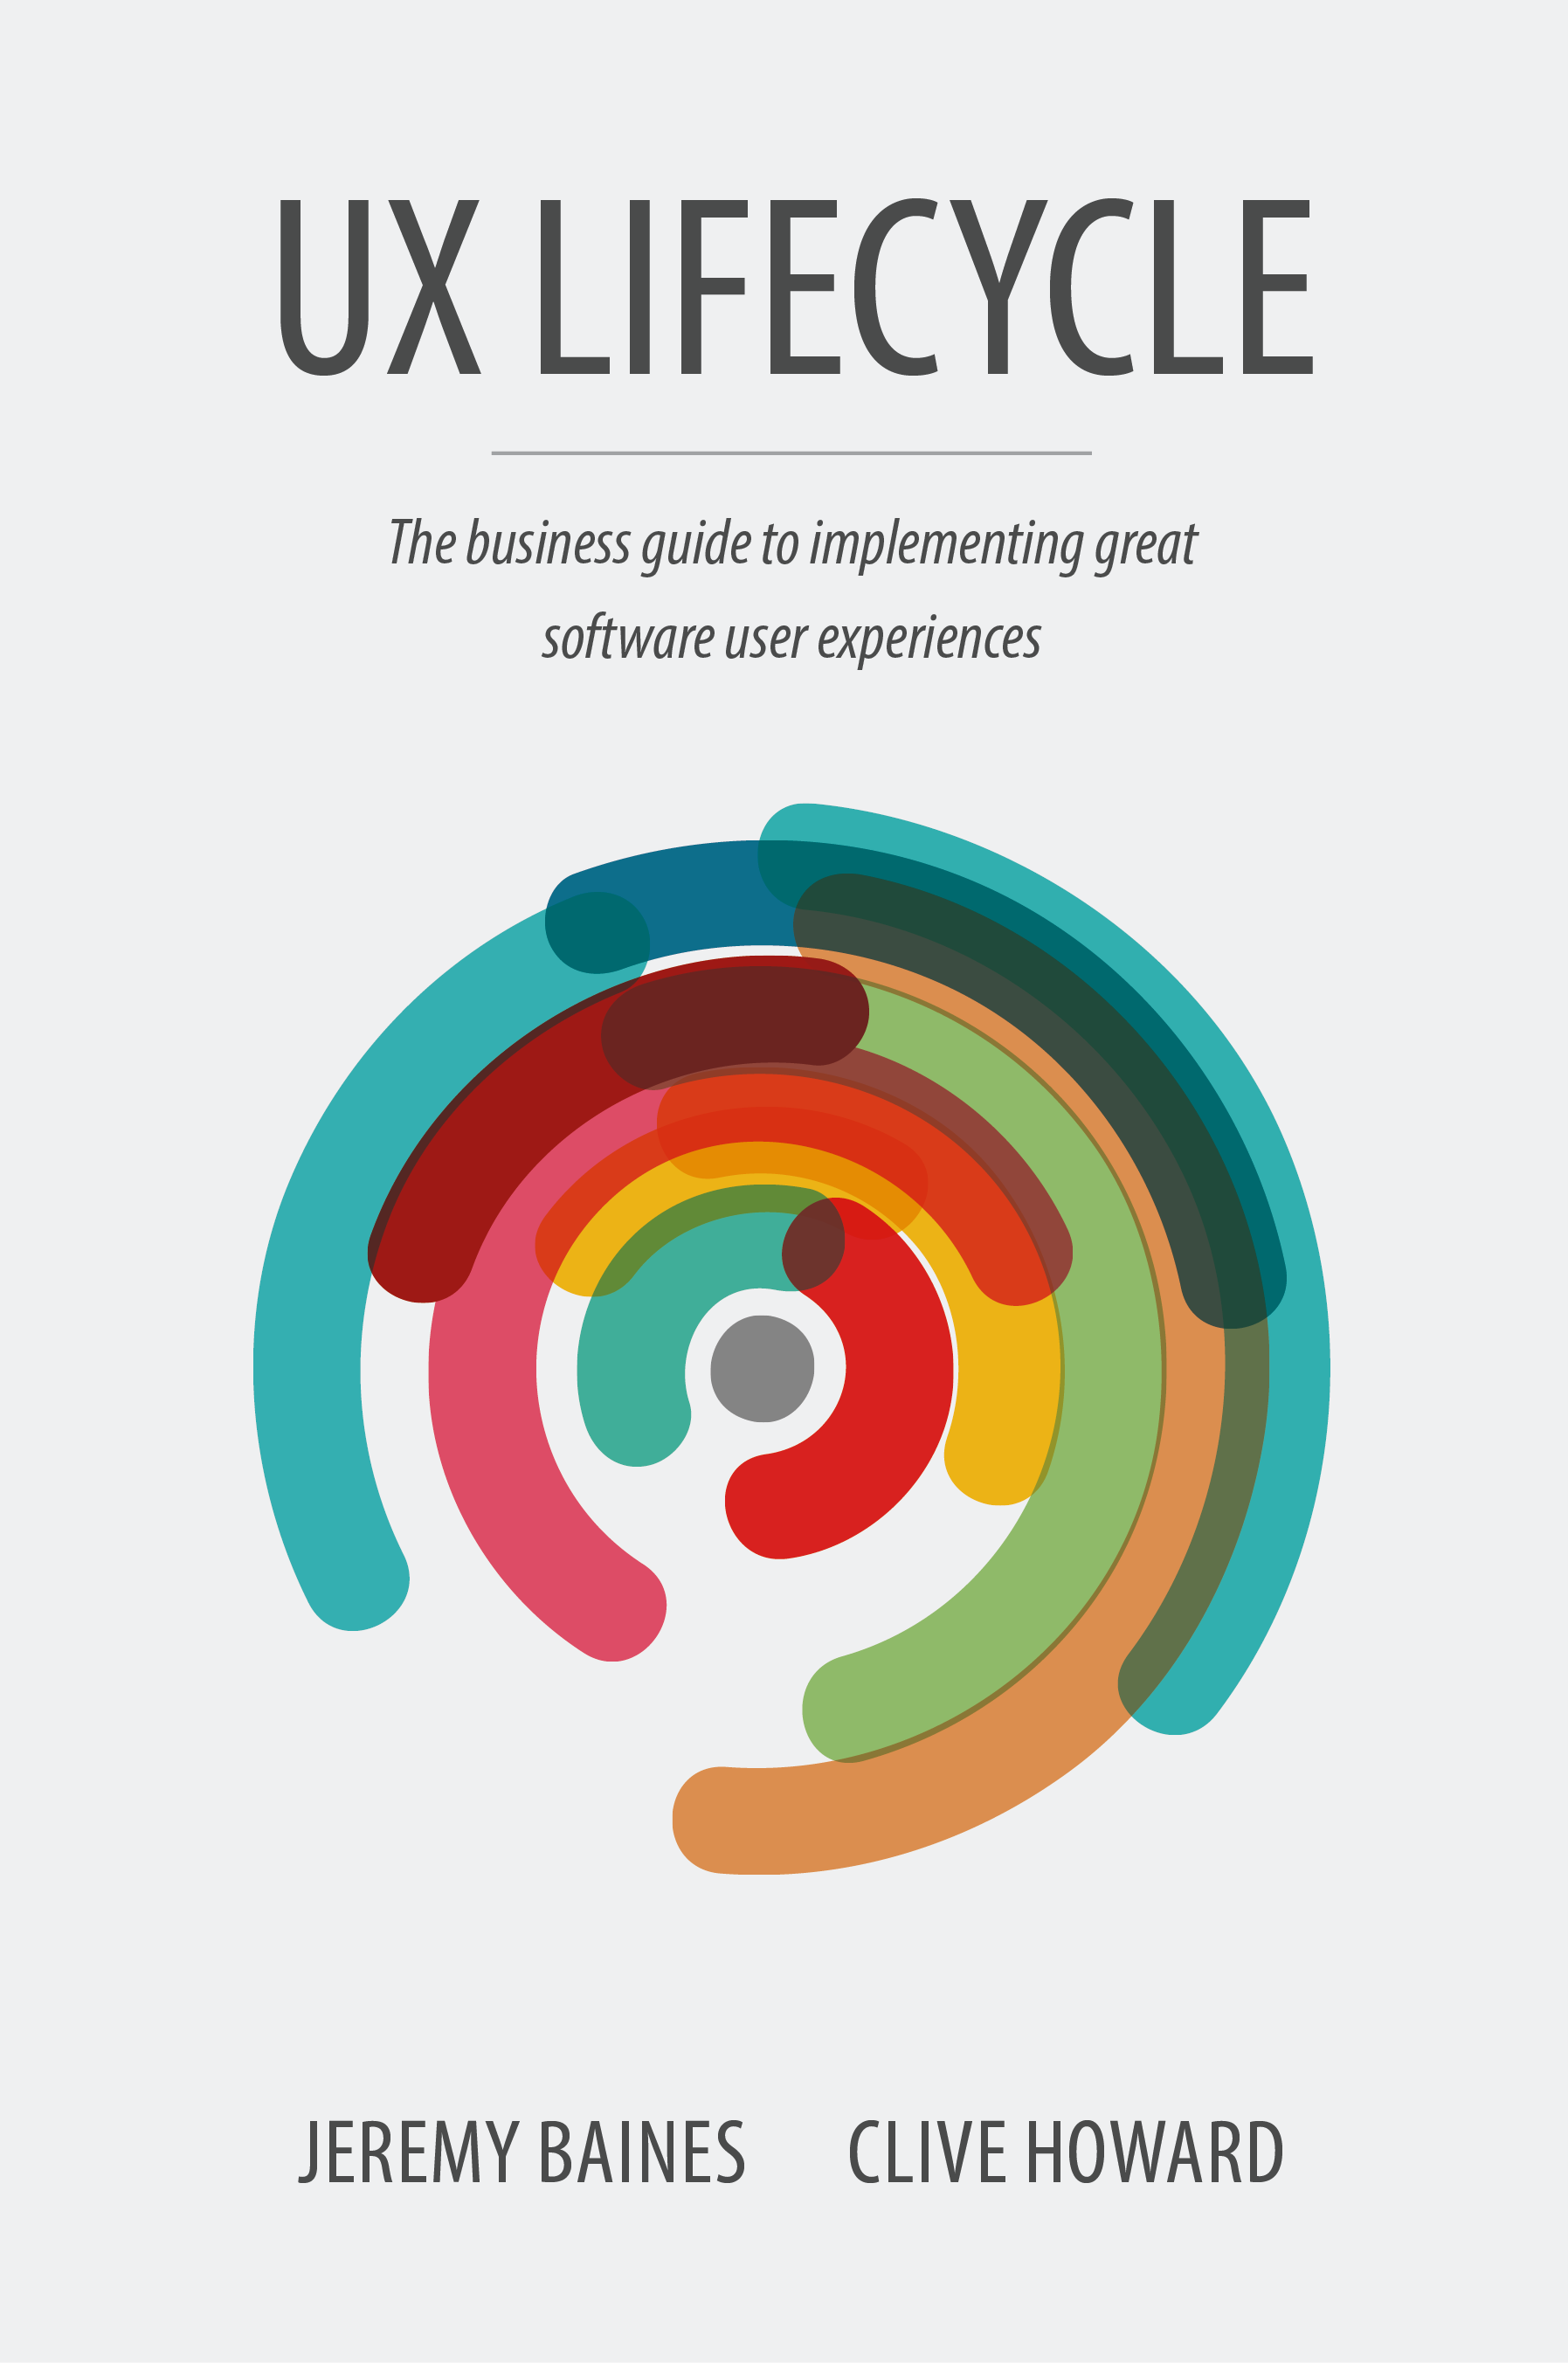 UX Lifecycle Book  Co Author of a business guide to implementing great software experinces